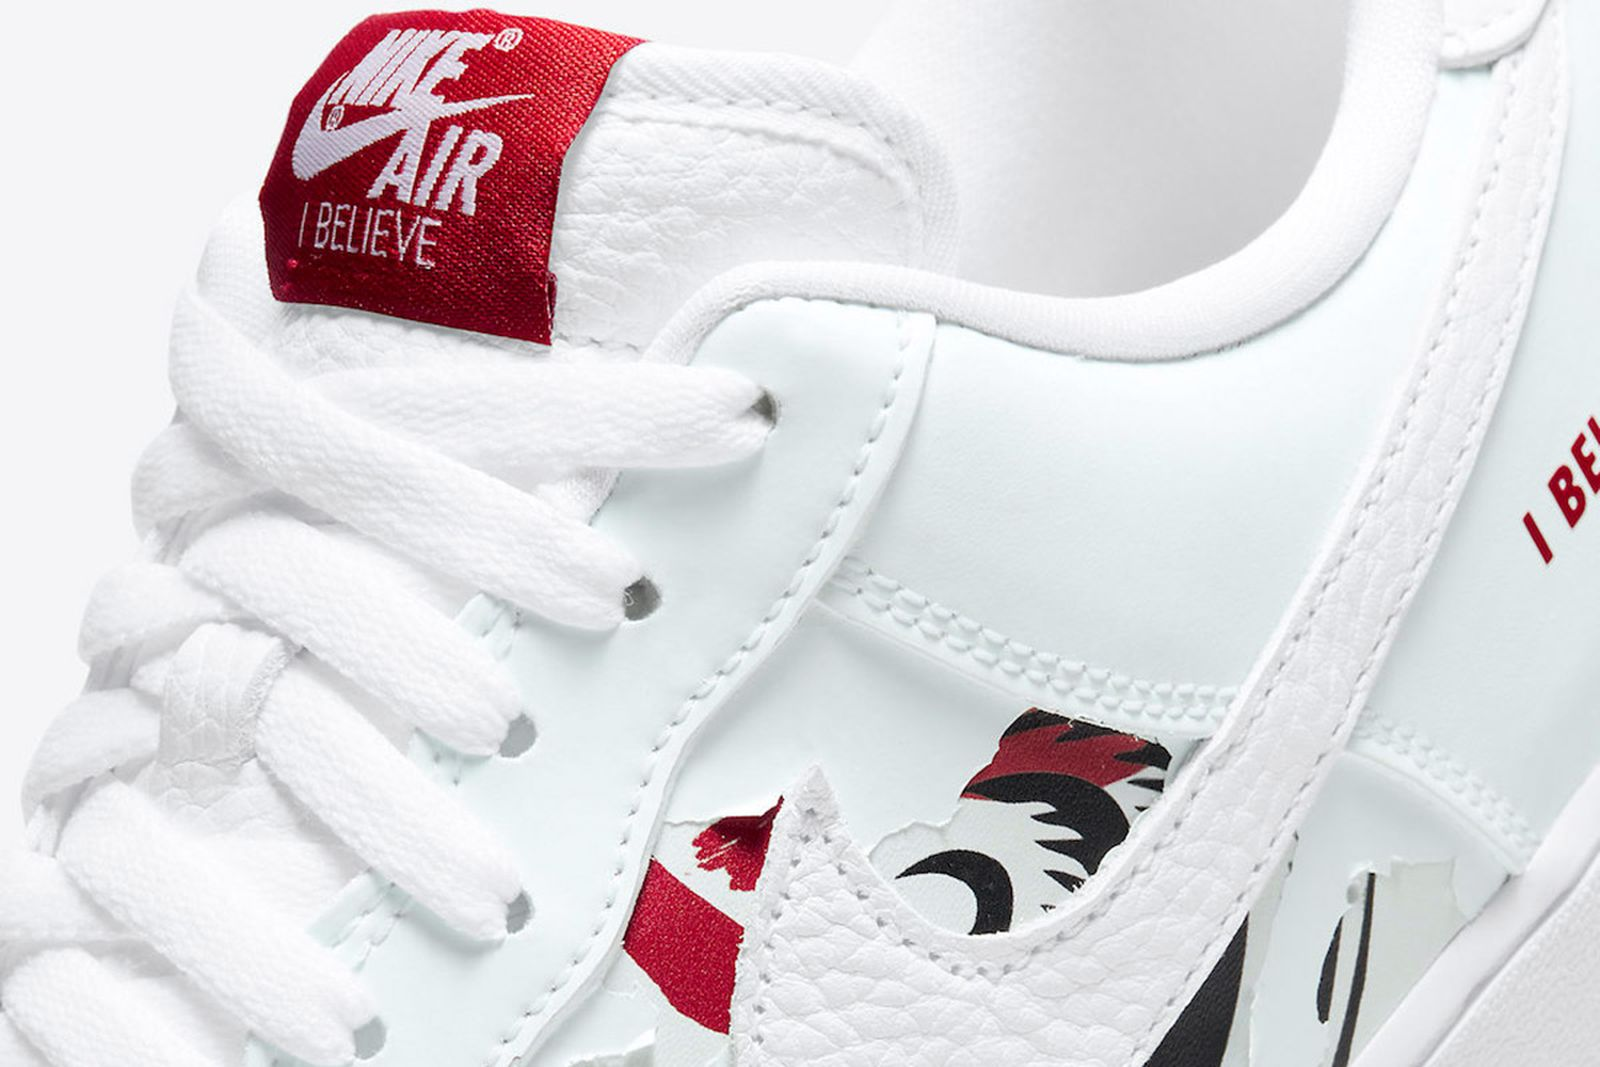 nike-air-force-1-low-i-believe-release-date-price-07